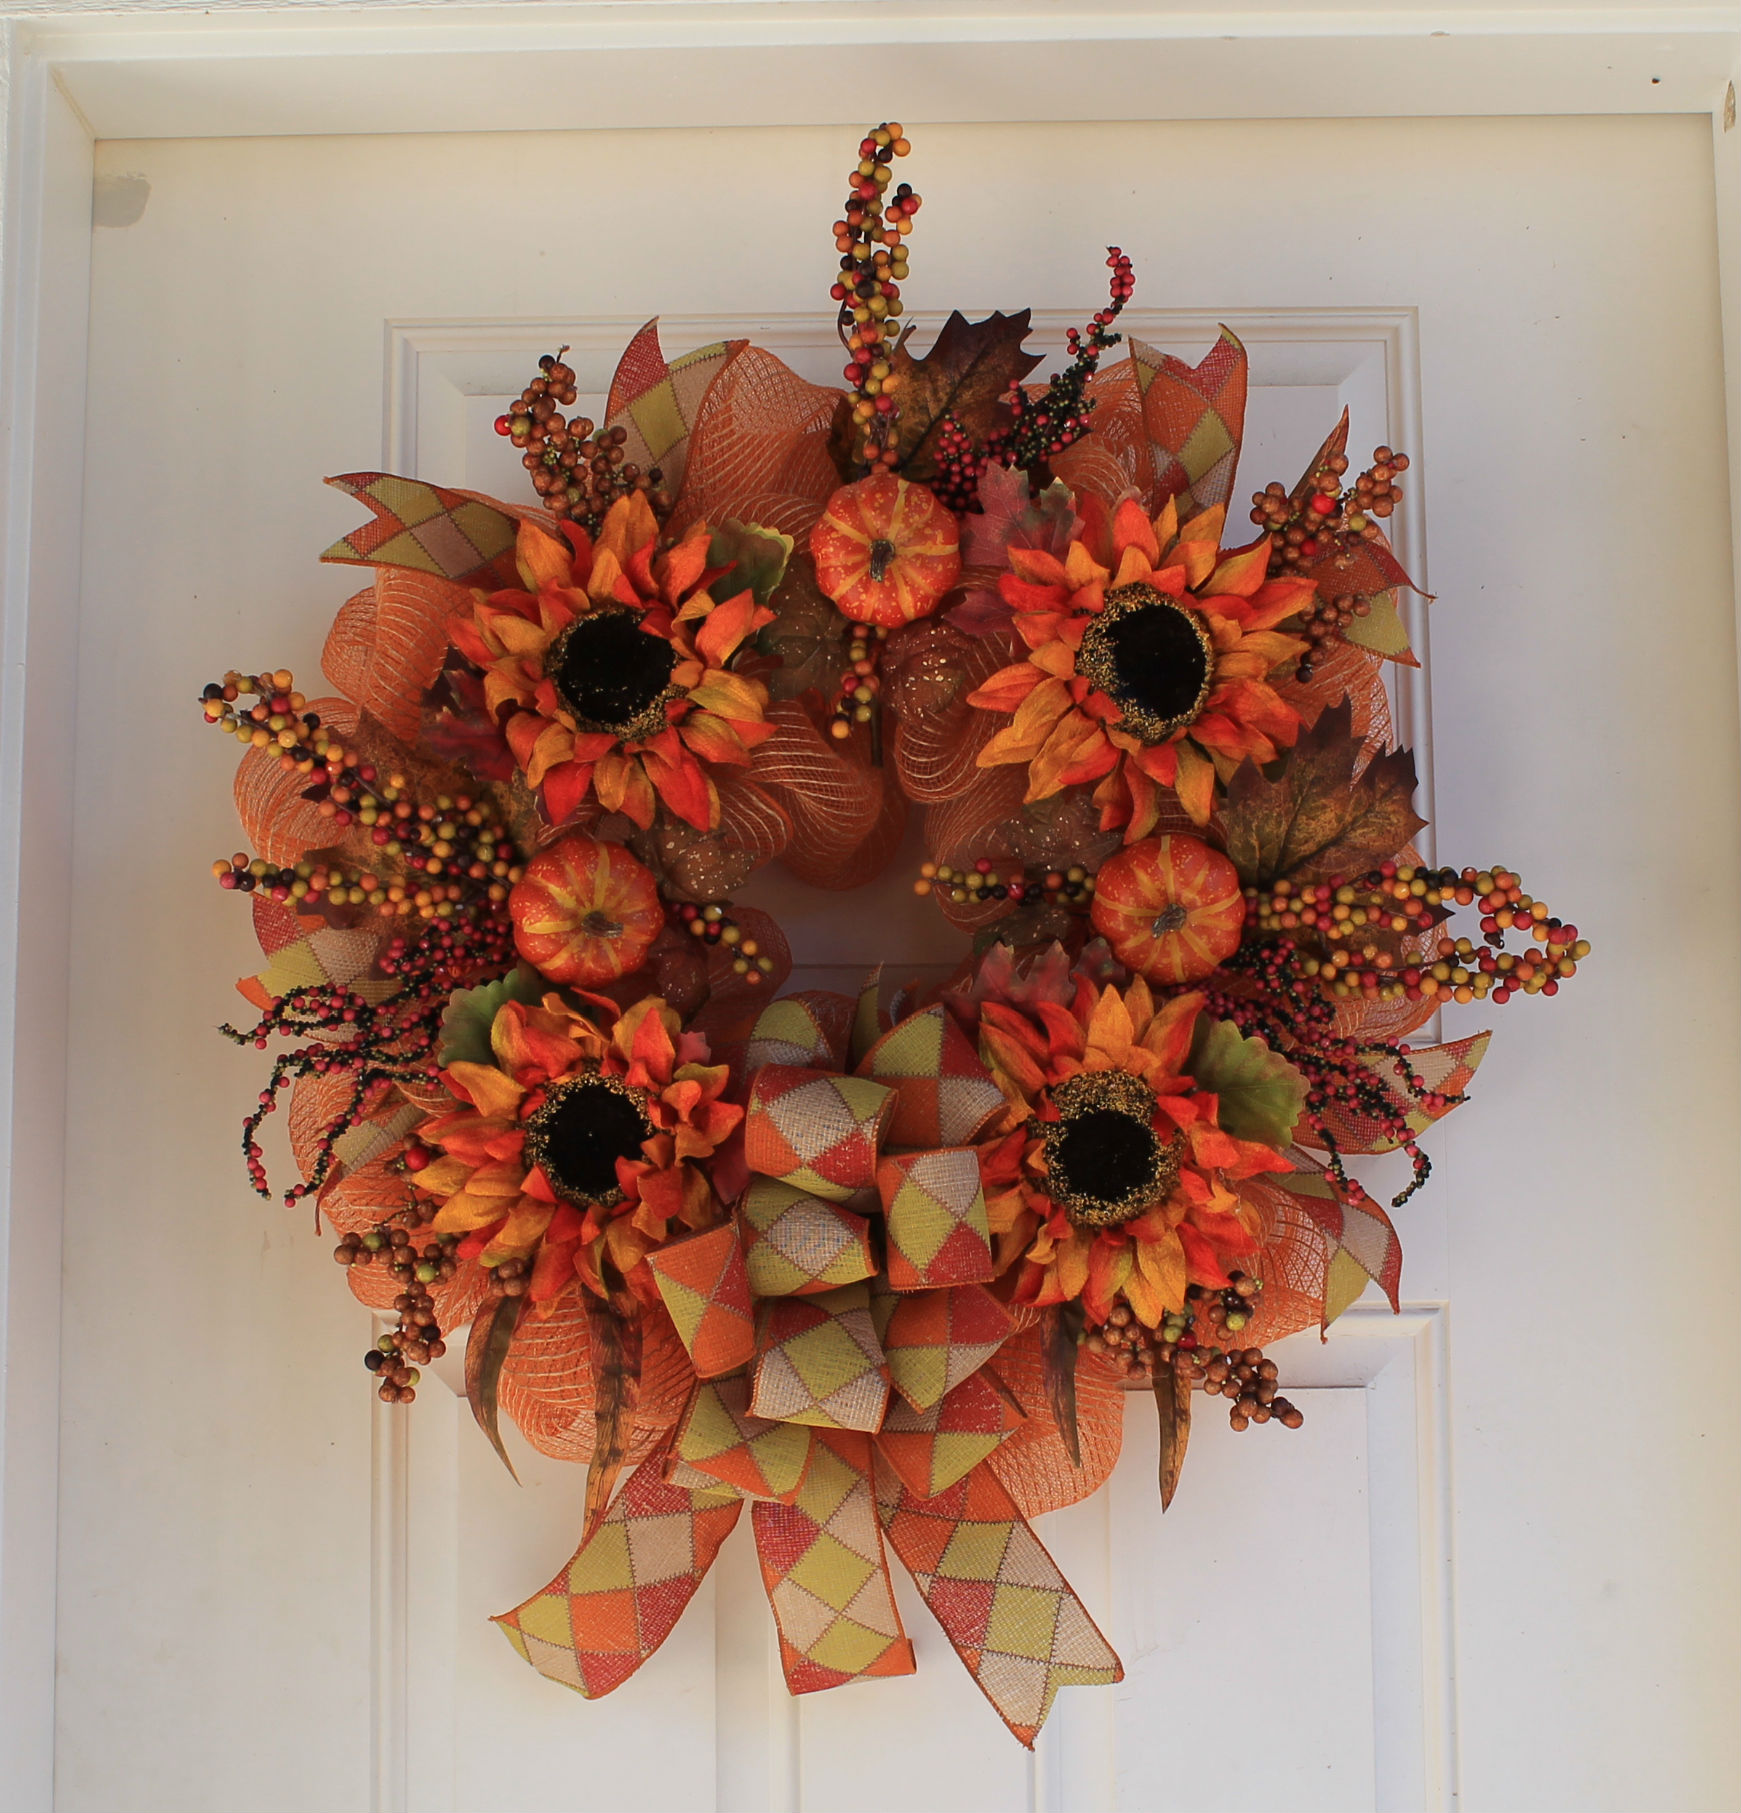 12 Easy Diy Deco Mesh Wreaths For Fall: DIY Fall Mesh Wreath